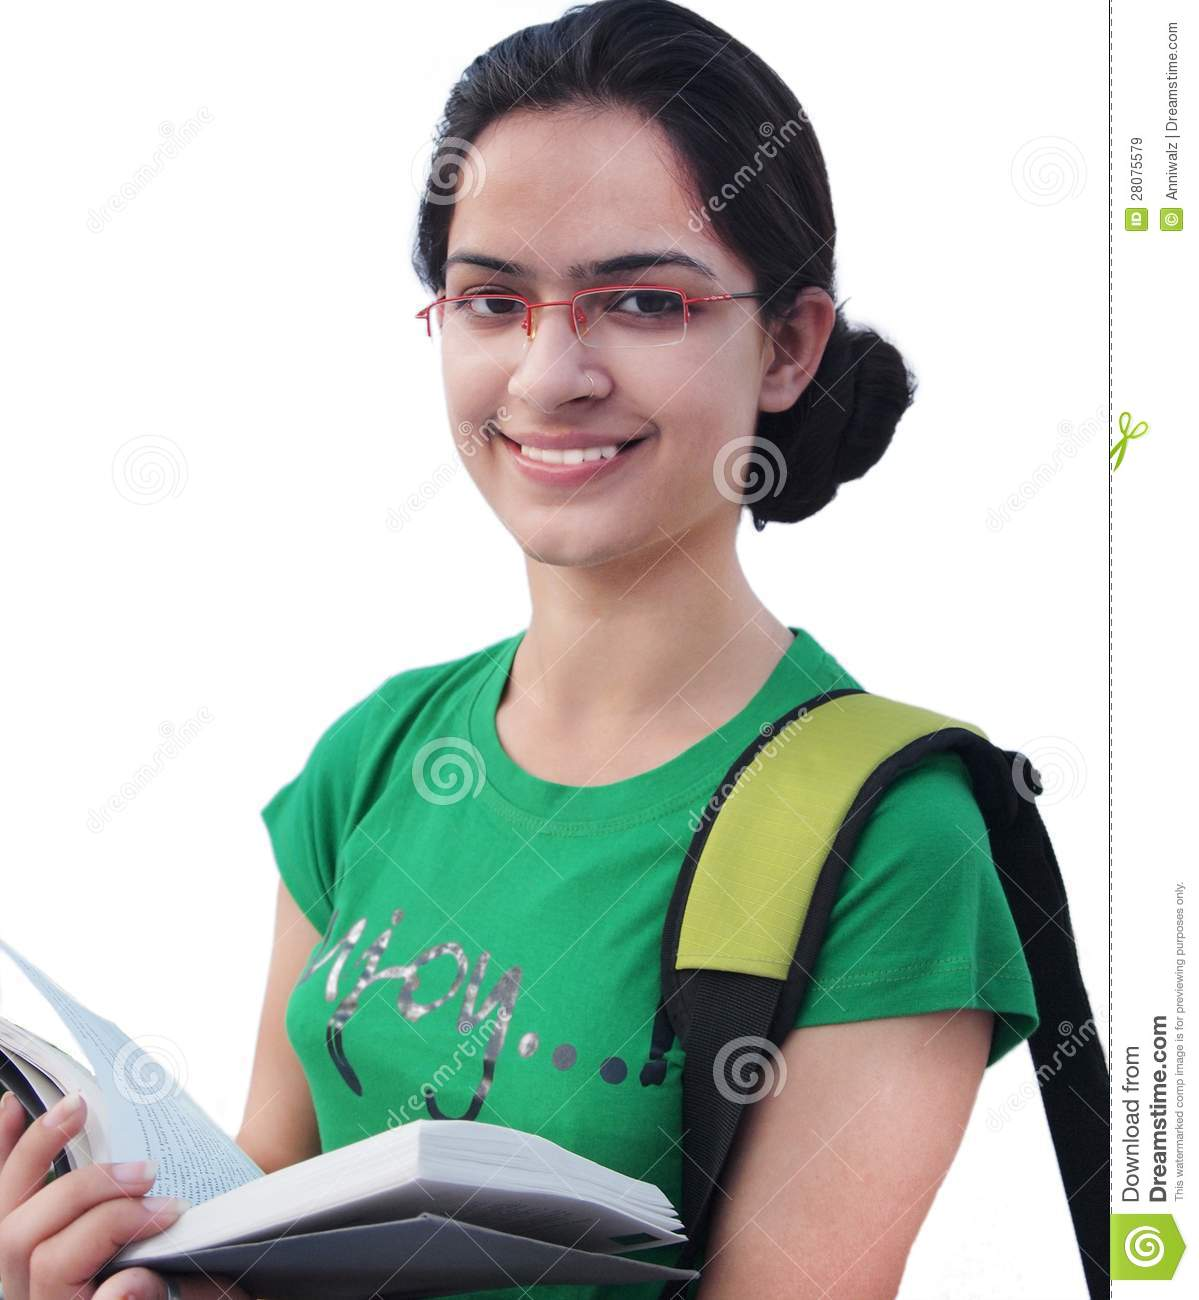 White student in the principles office